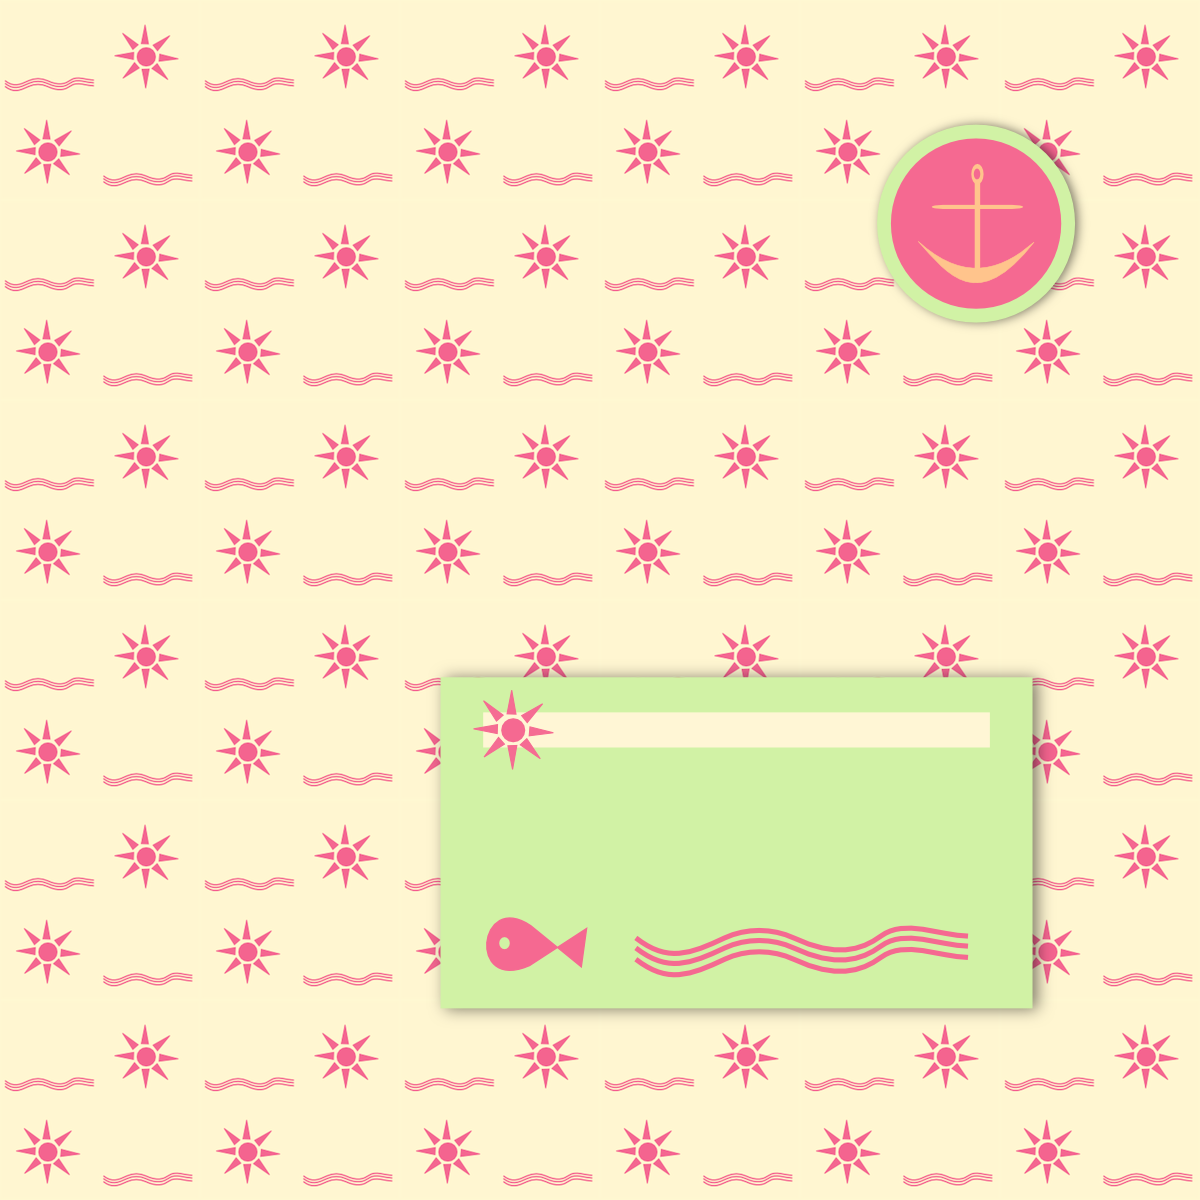 Scrapbook paper and stickers - Today I M Sharing Another Free Digital Beach Themed Scrapbooking Paper With You This Time I Ve Drawn The Sun And The Sea In A Stylized Way